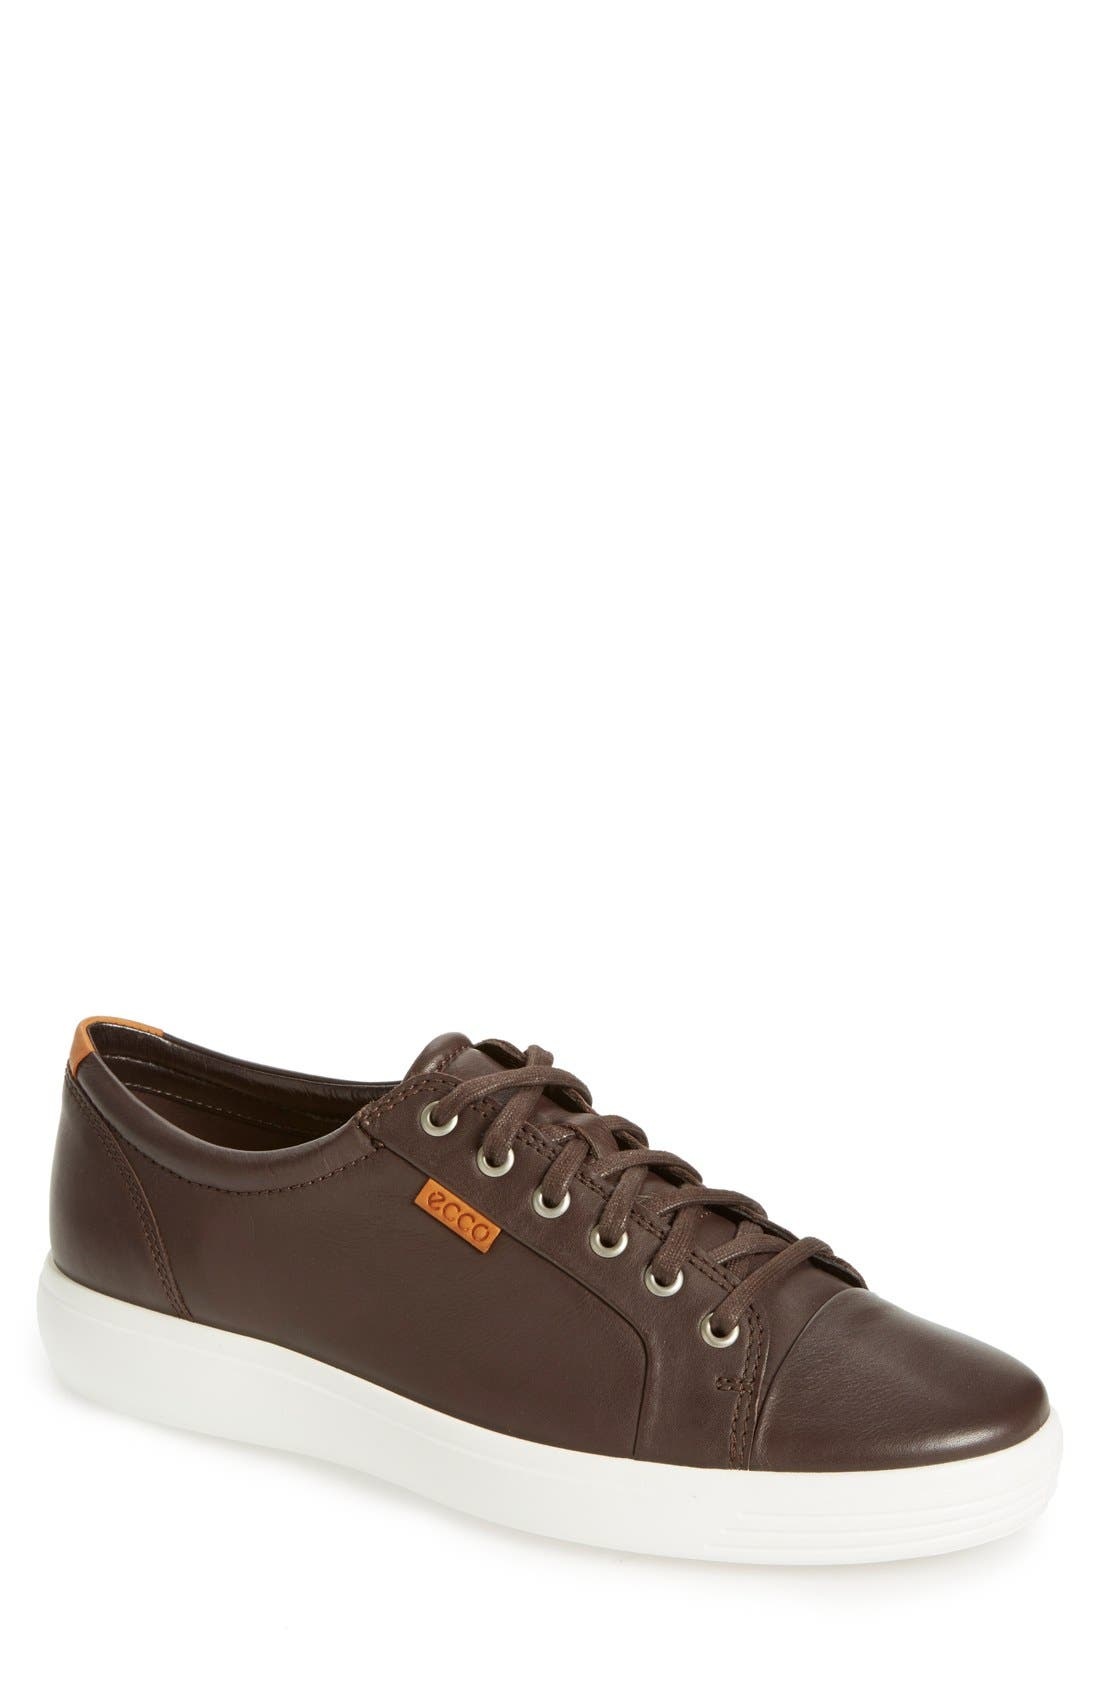 Soft VII Lace-Up Sneaker,                             Main thumbnail 15, color,